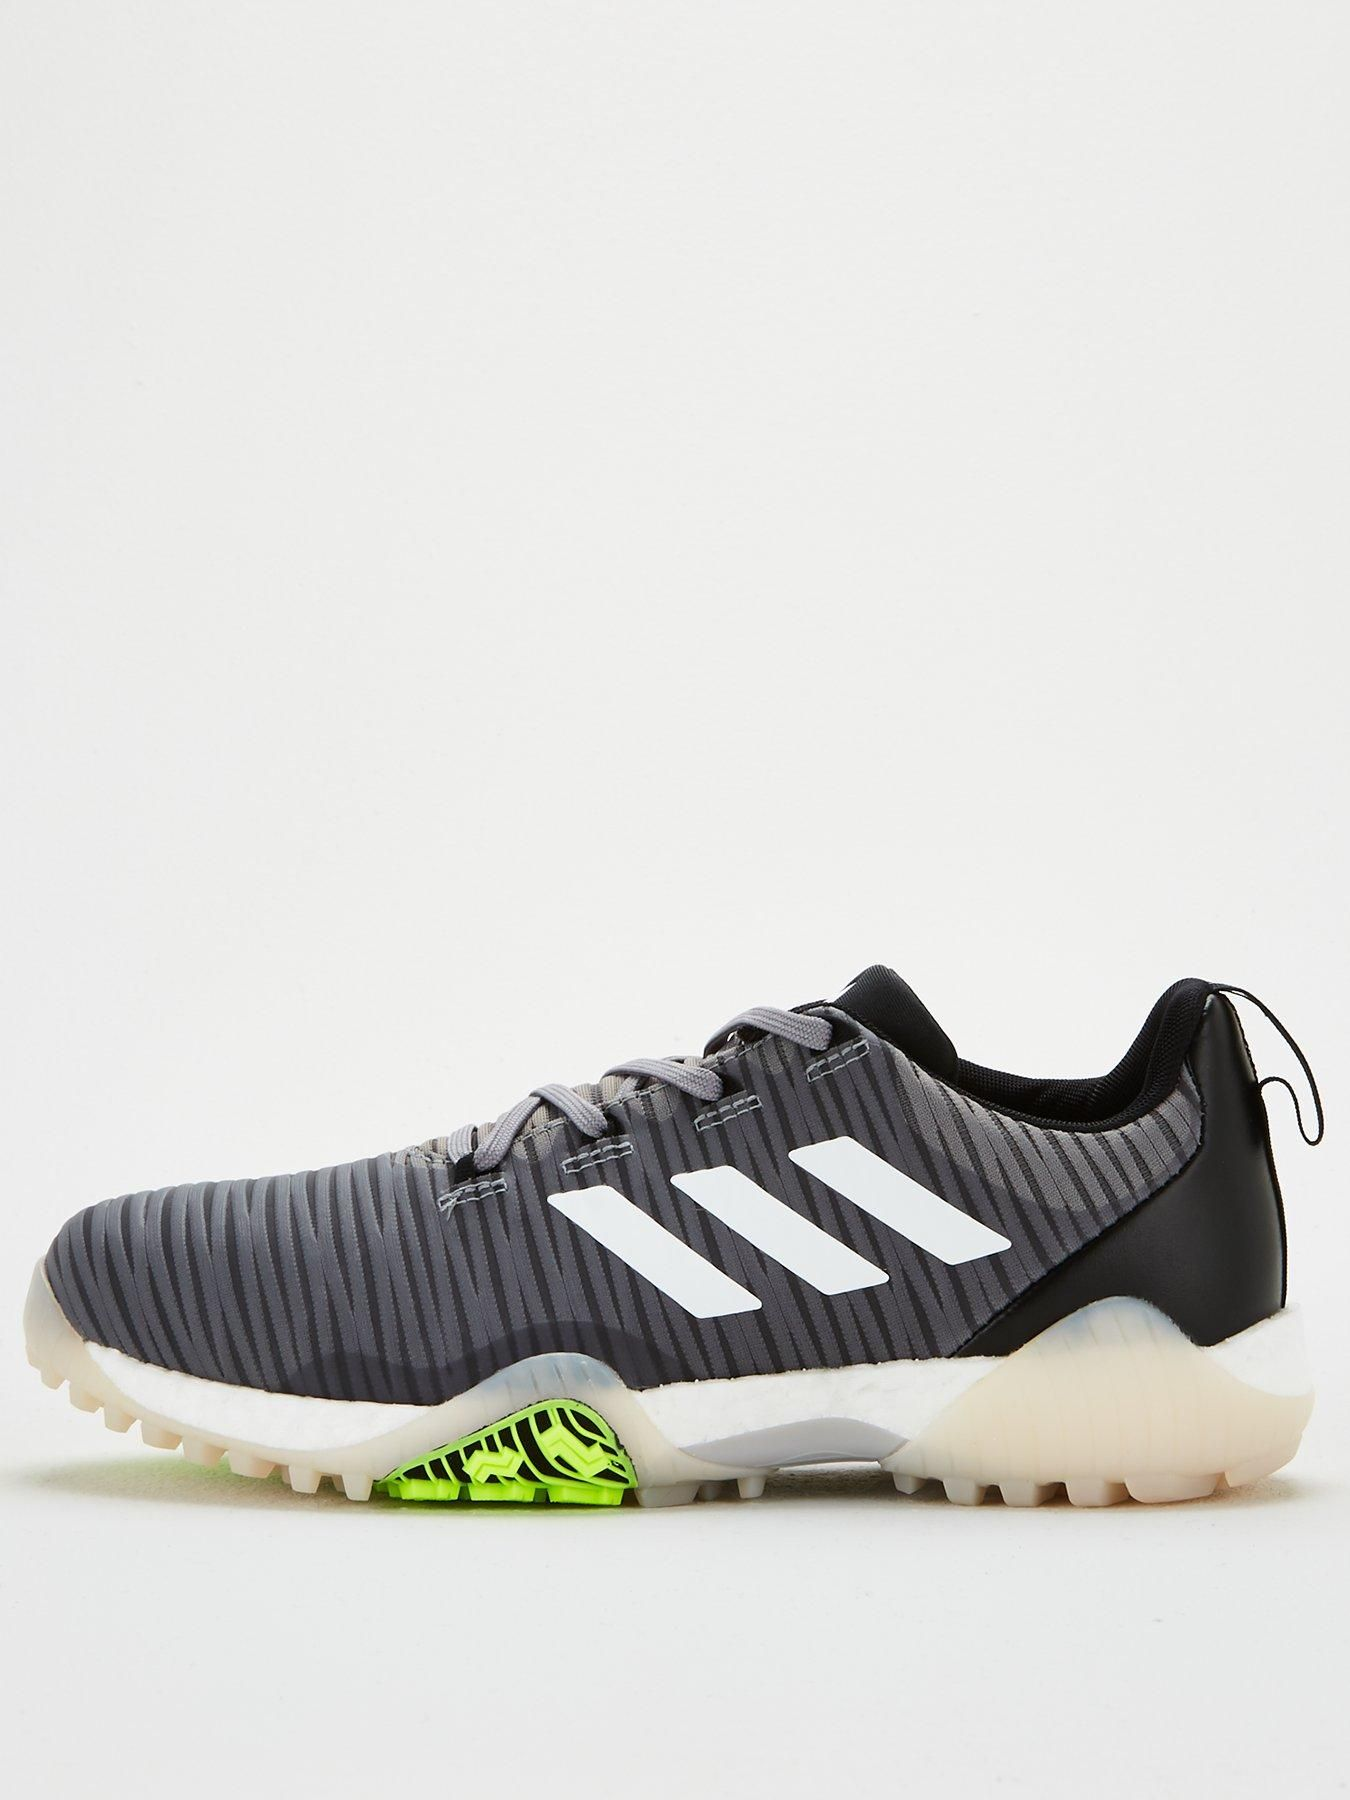 Adidas Adidas Golf Code Chaos Trainer Grey White Size 10 Men